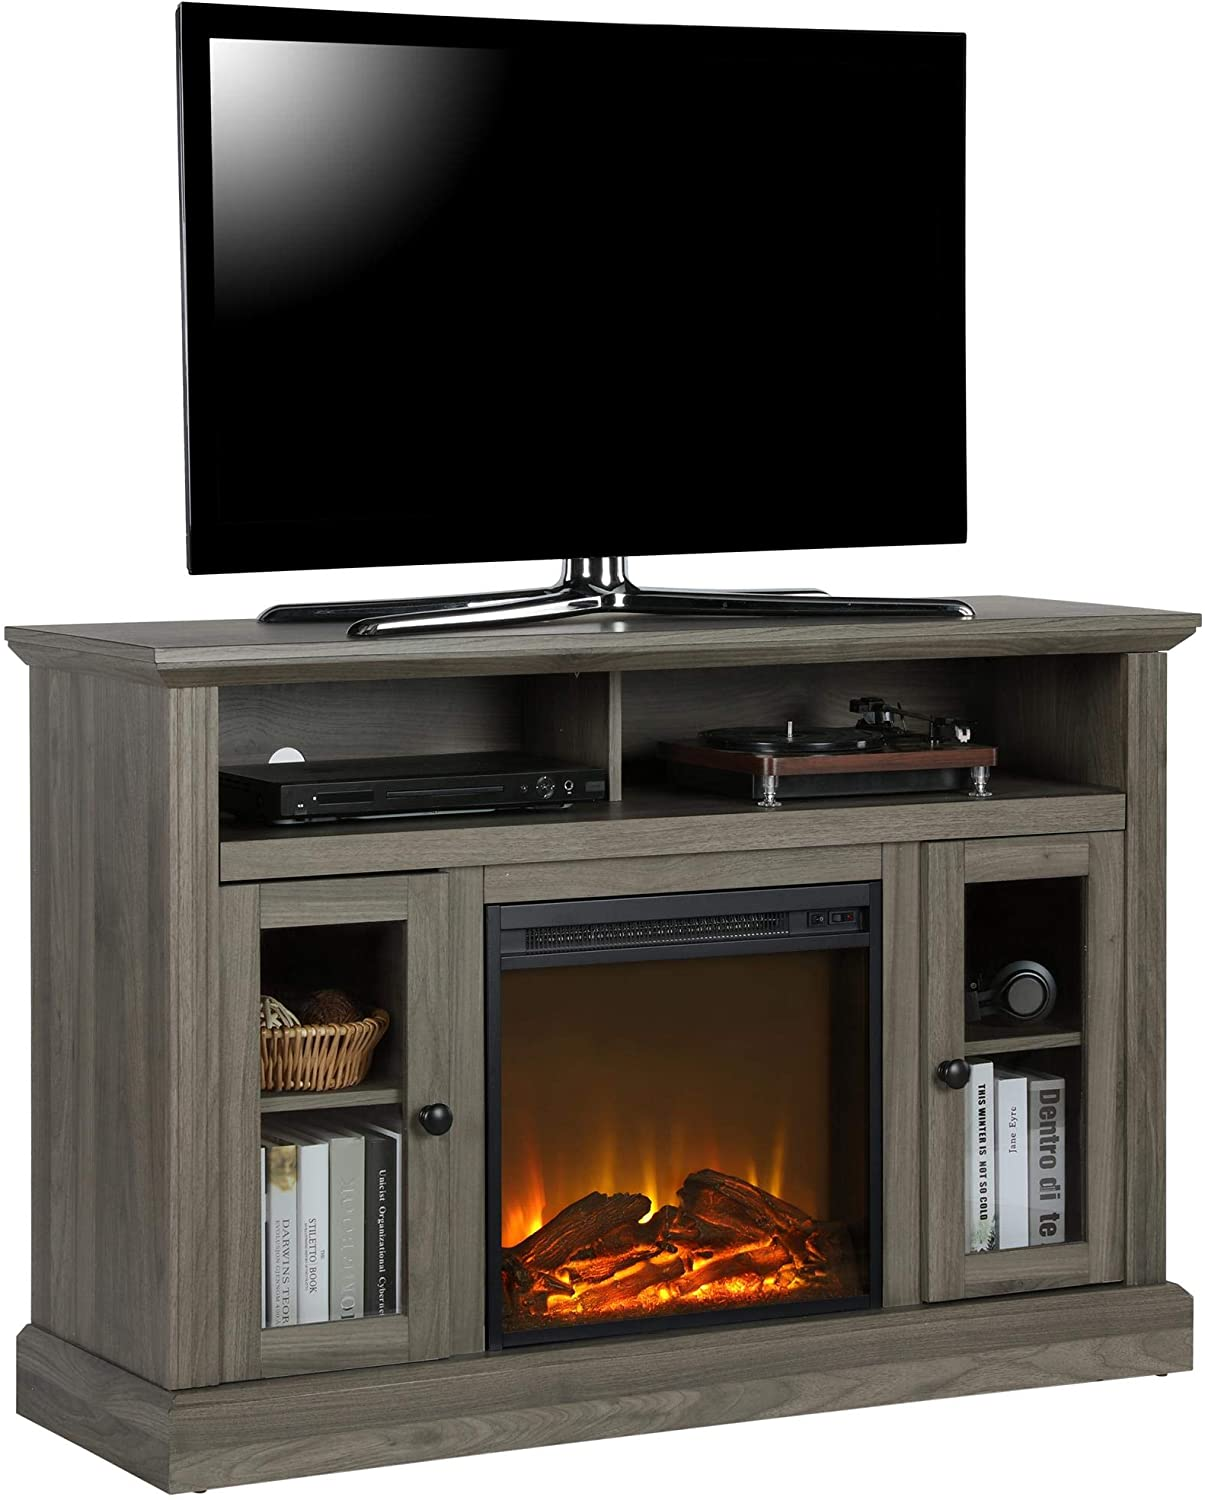 Amazon Com Ameriwood Home Chicago Tv Stand With Fireplace Rustic Gray Furniture Decor